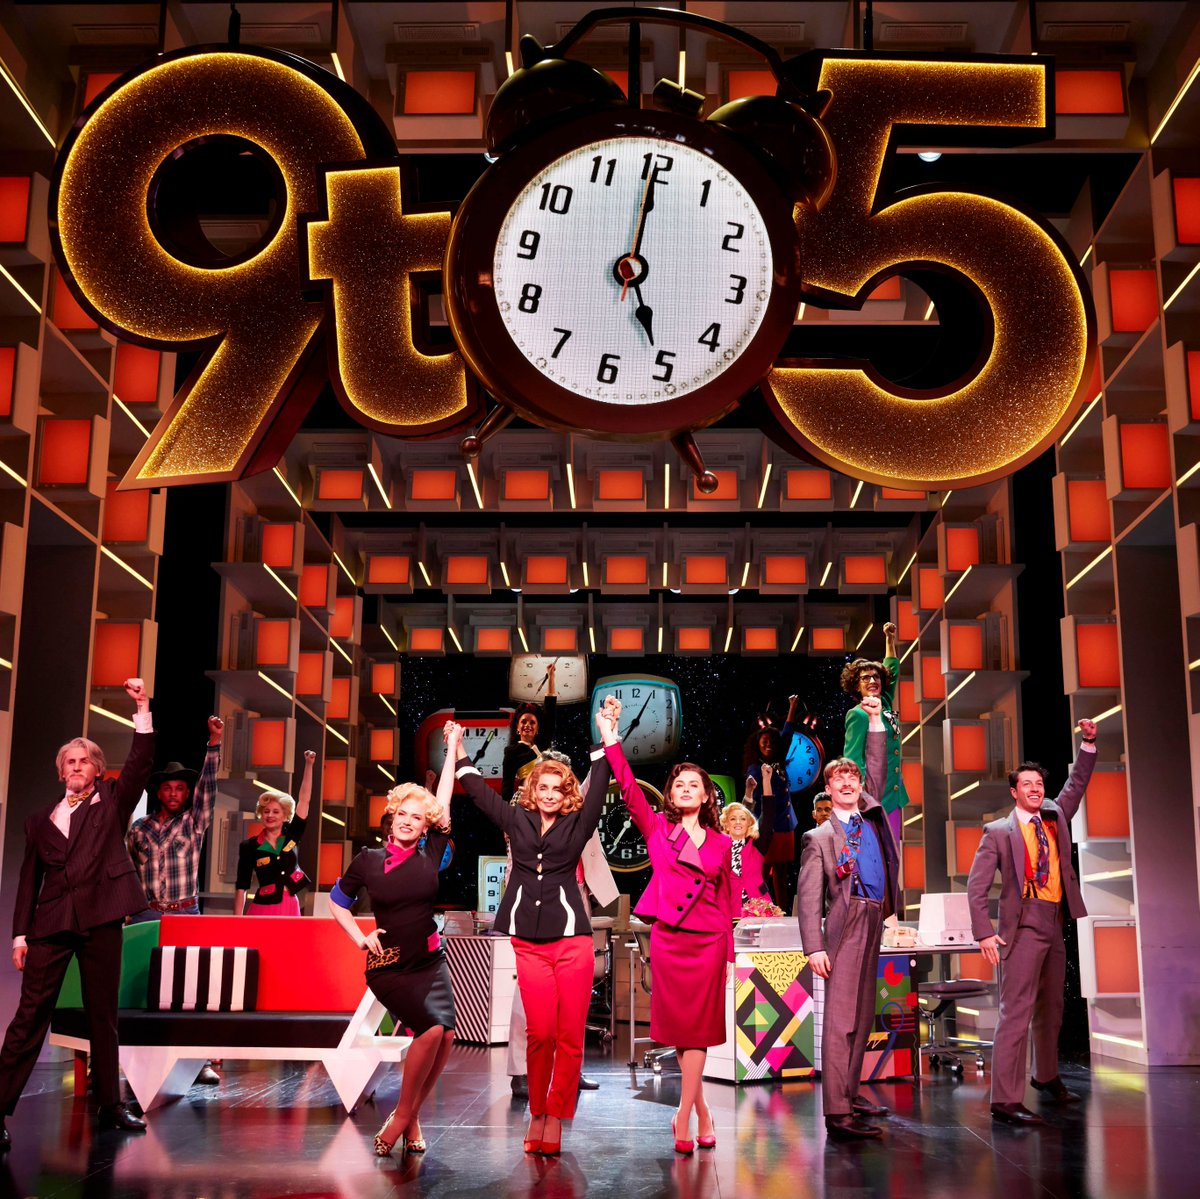 **SPECIAL OFFER ALERT, Y'ALL! 9 to 5 THE MUSICAL** Tumble outta bed and stumble to Dolly Parton's rip-roaring West End musical! SAVE UP TO 47% Tickets from £25 - Book here > http://bit.ly/37QTiU4  Photos by Pamela Raith Photographypic.twitter.com/0Me1RDaGEV